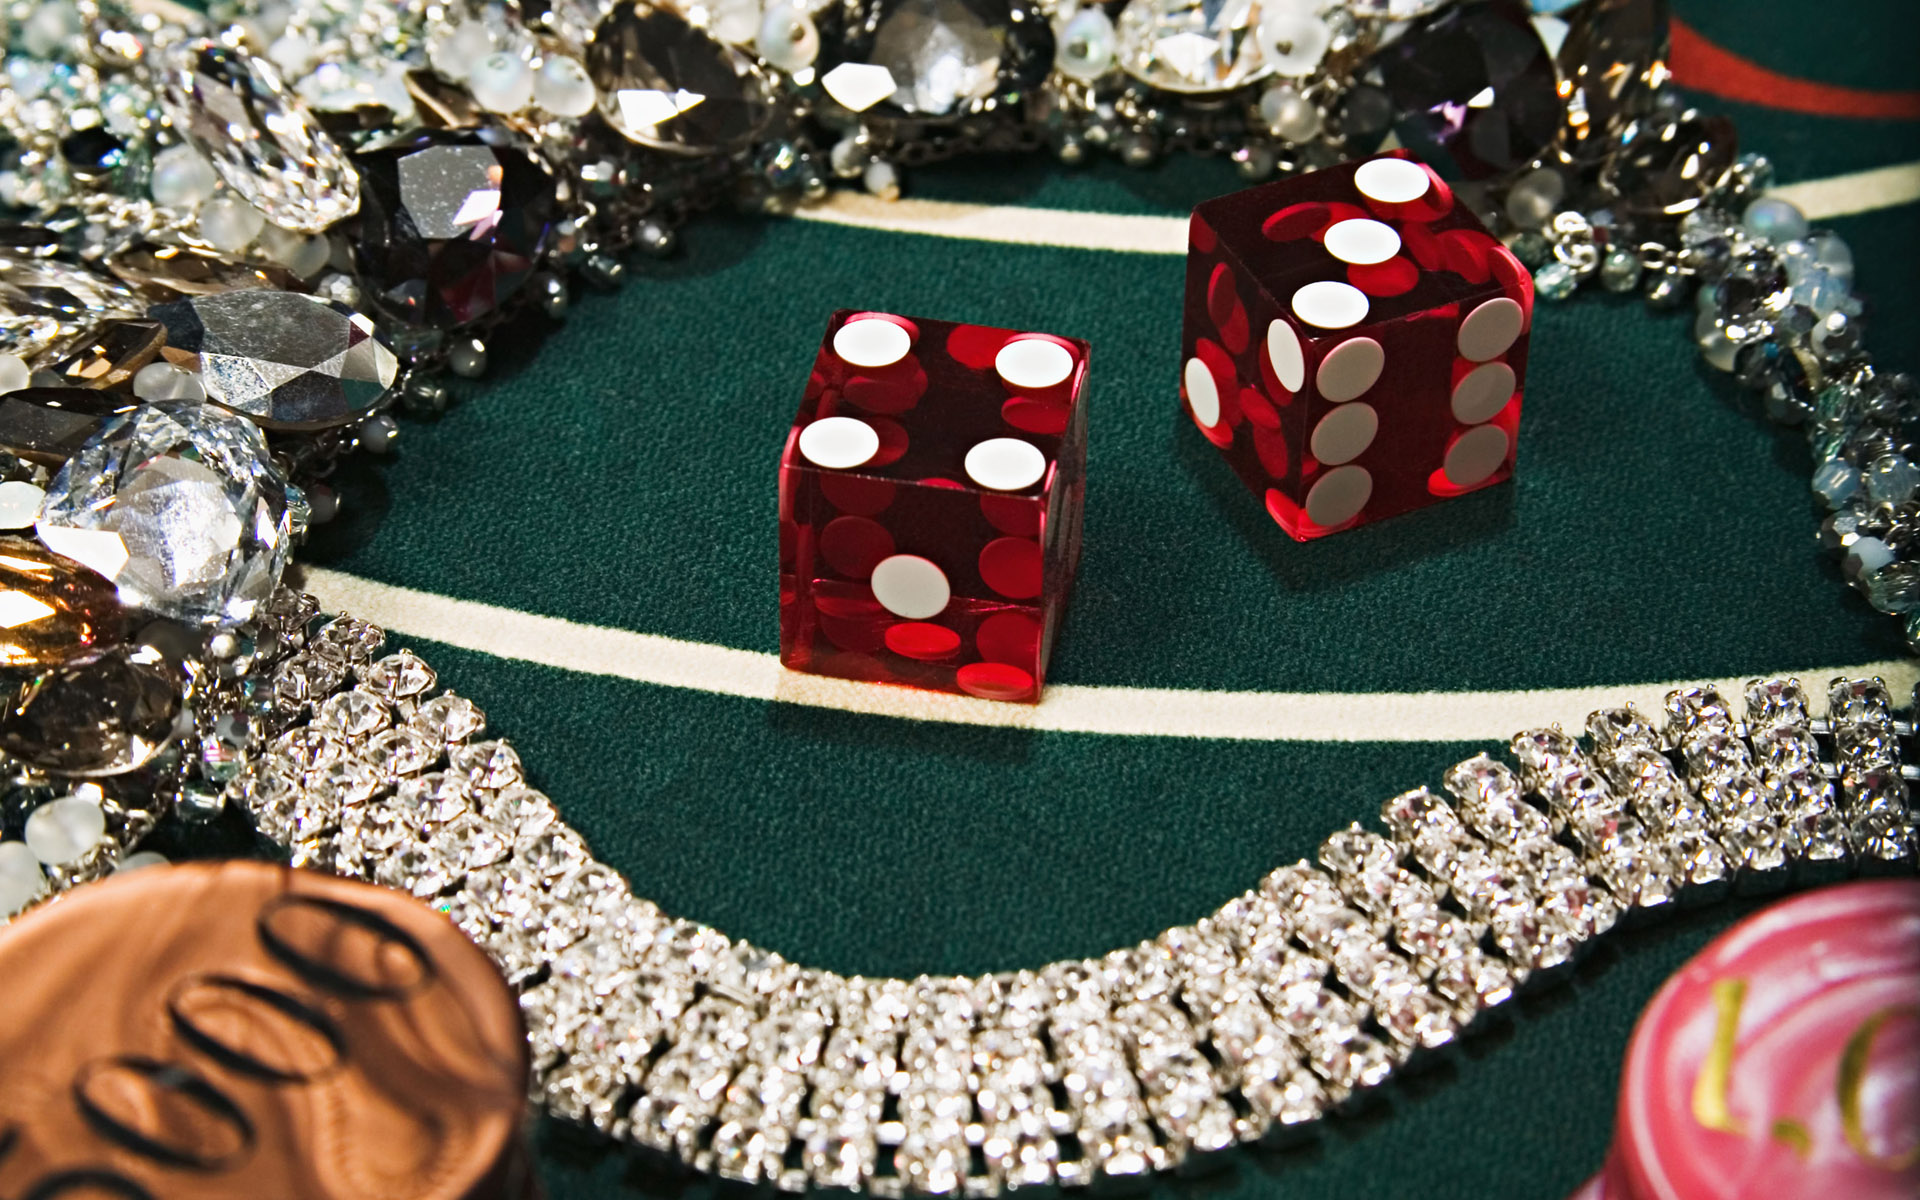 Our Casino Games Are Becoming Quite Popular!